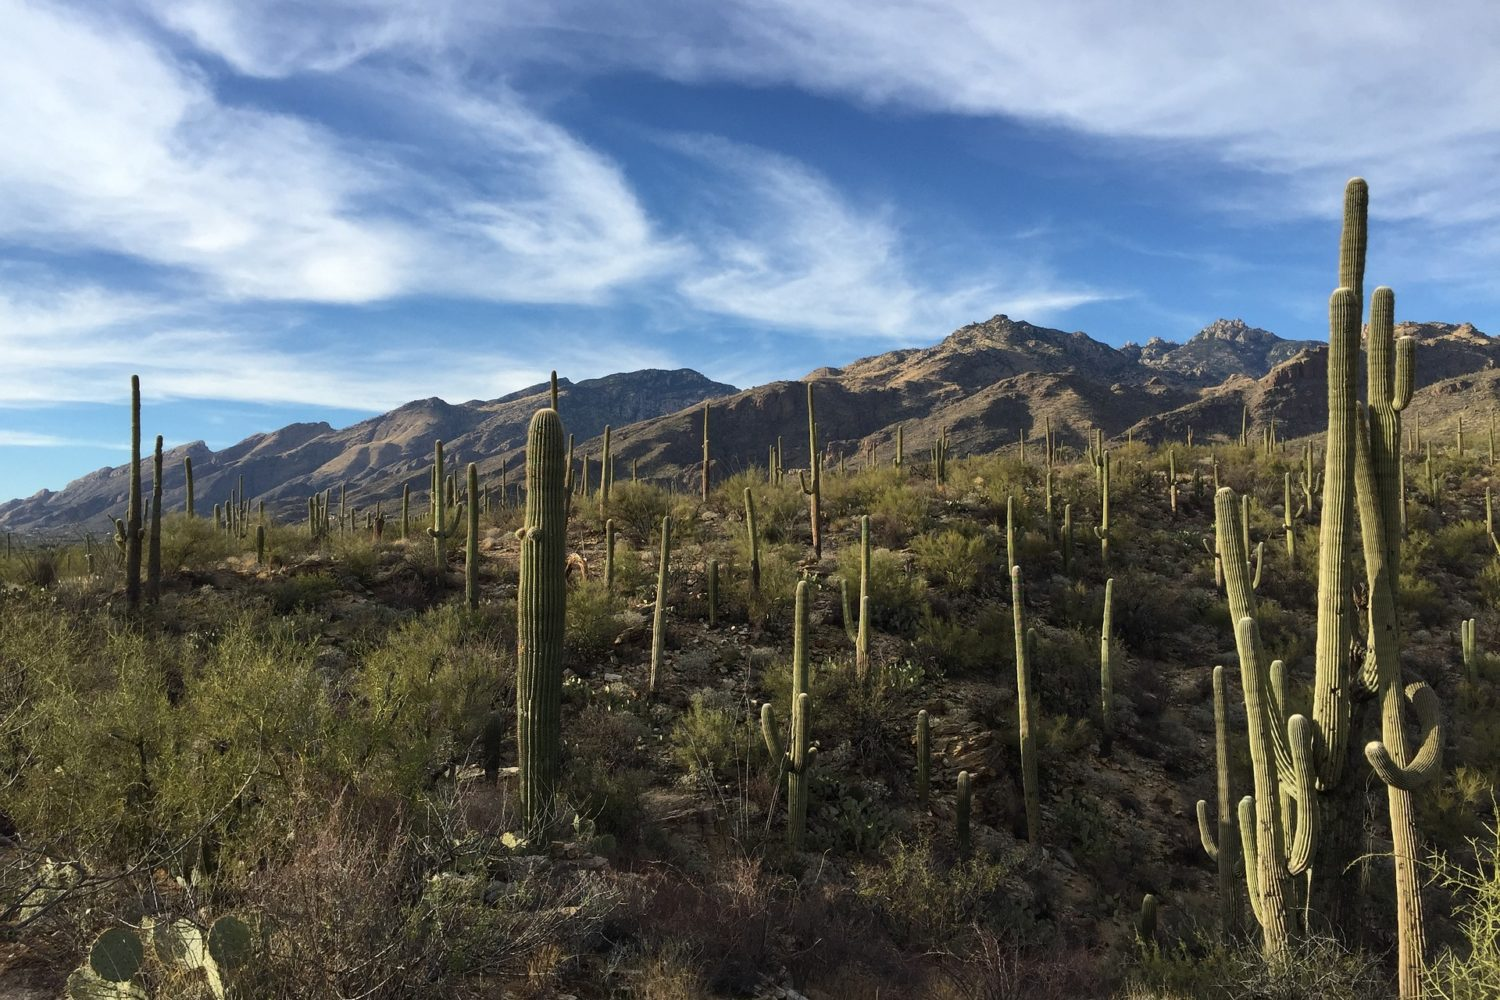 Towering saguaro greet you as your ride away from it all